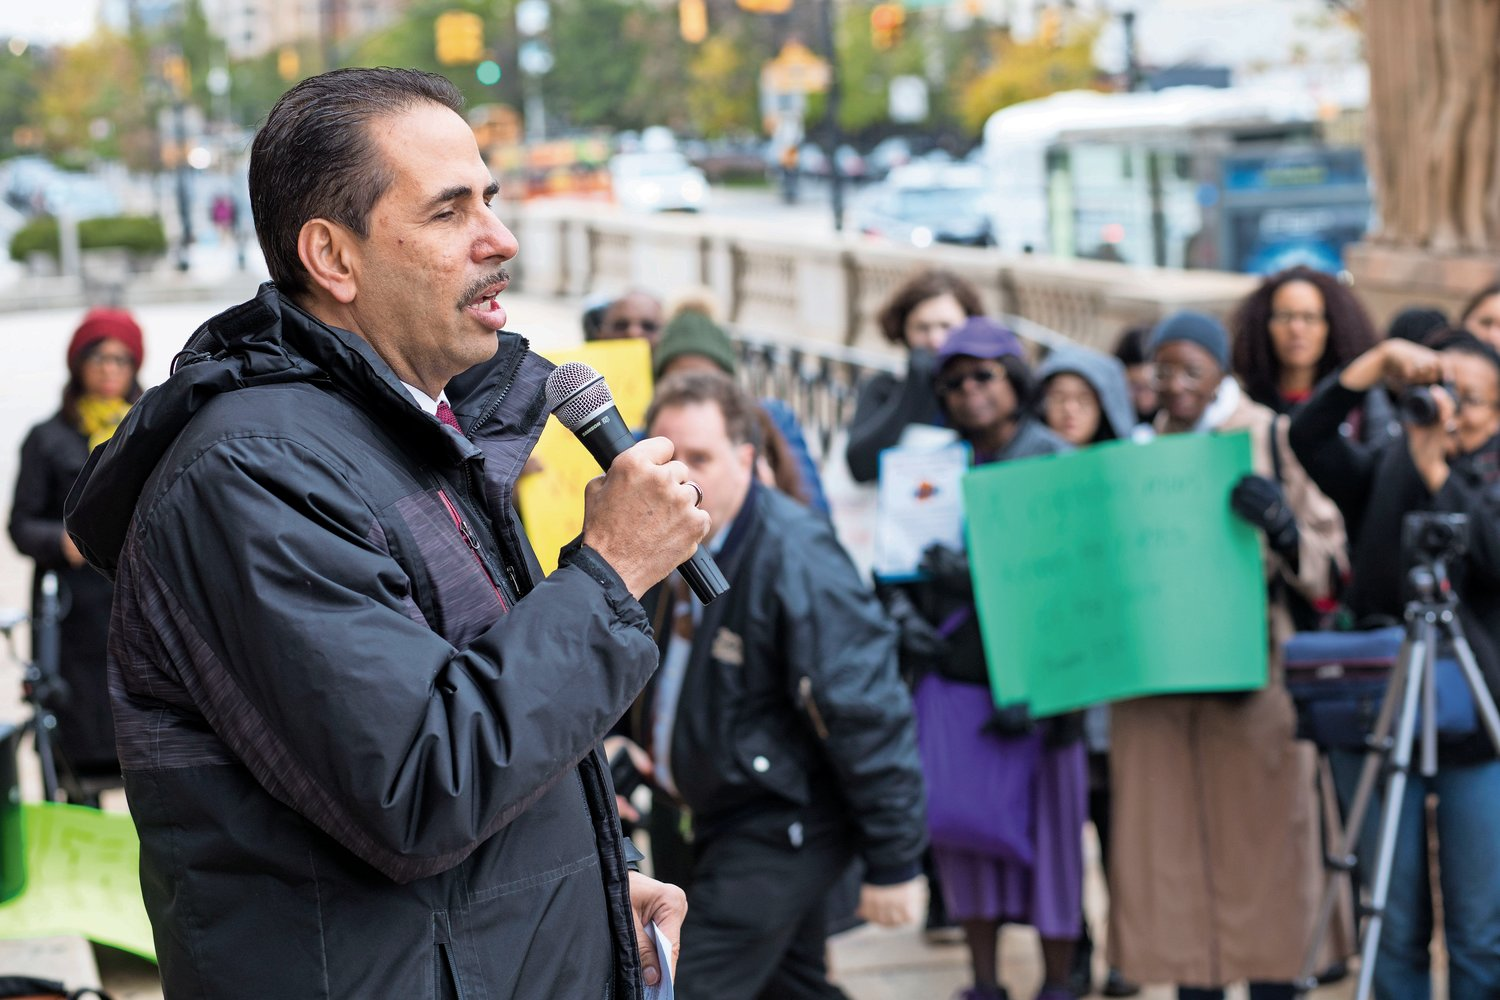 Councilman Fernando Cabrera speaks at a rally calling for improvements in healthcare in the Bronx, which ranks last out of the 62 counties in New York State in the County Health Rankings and Roadmaps Report.